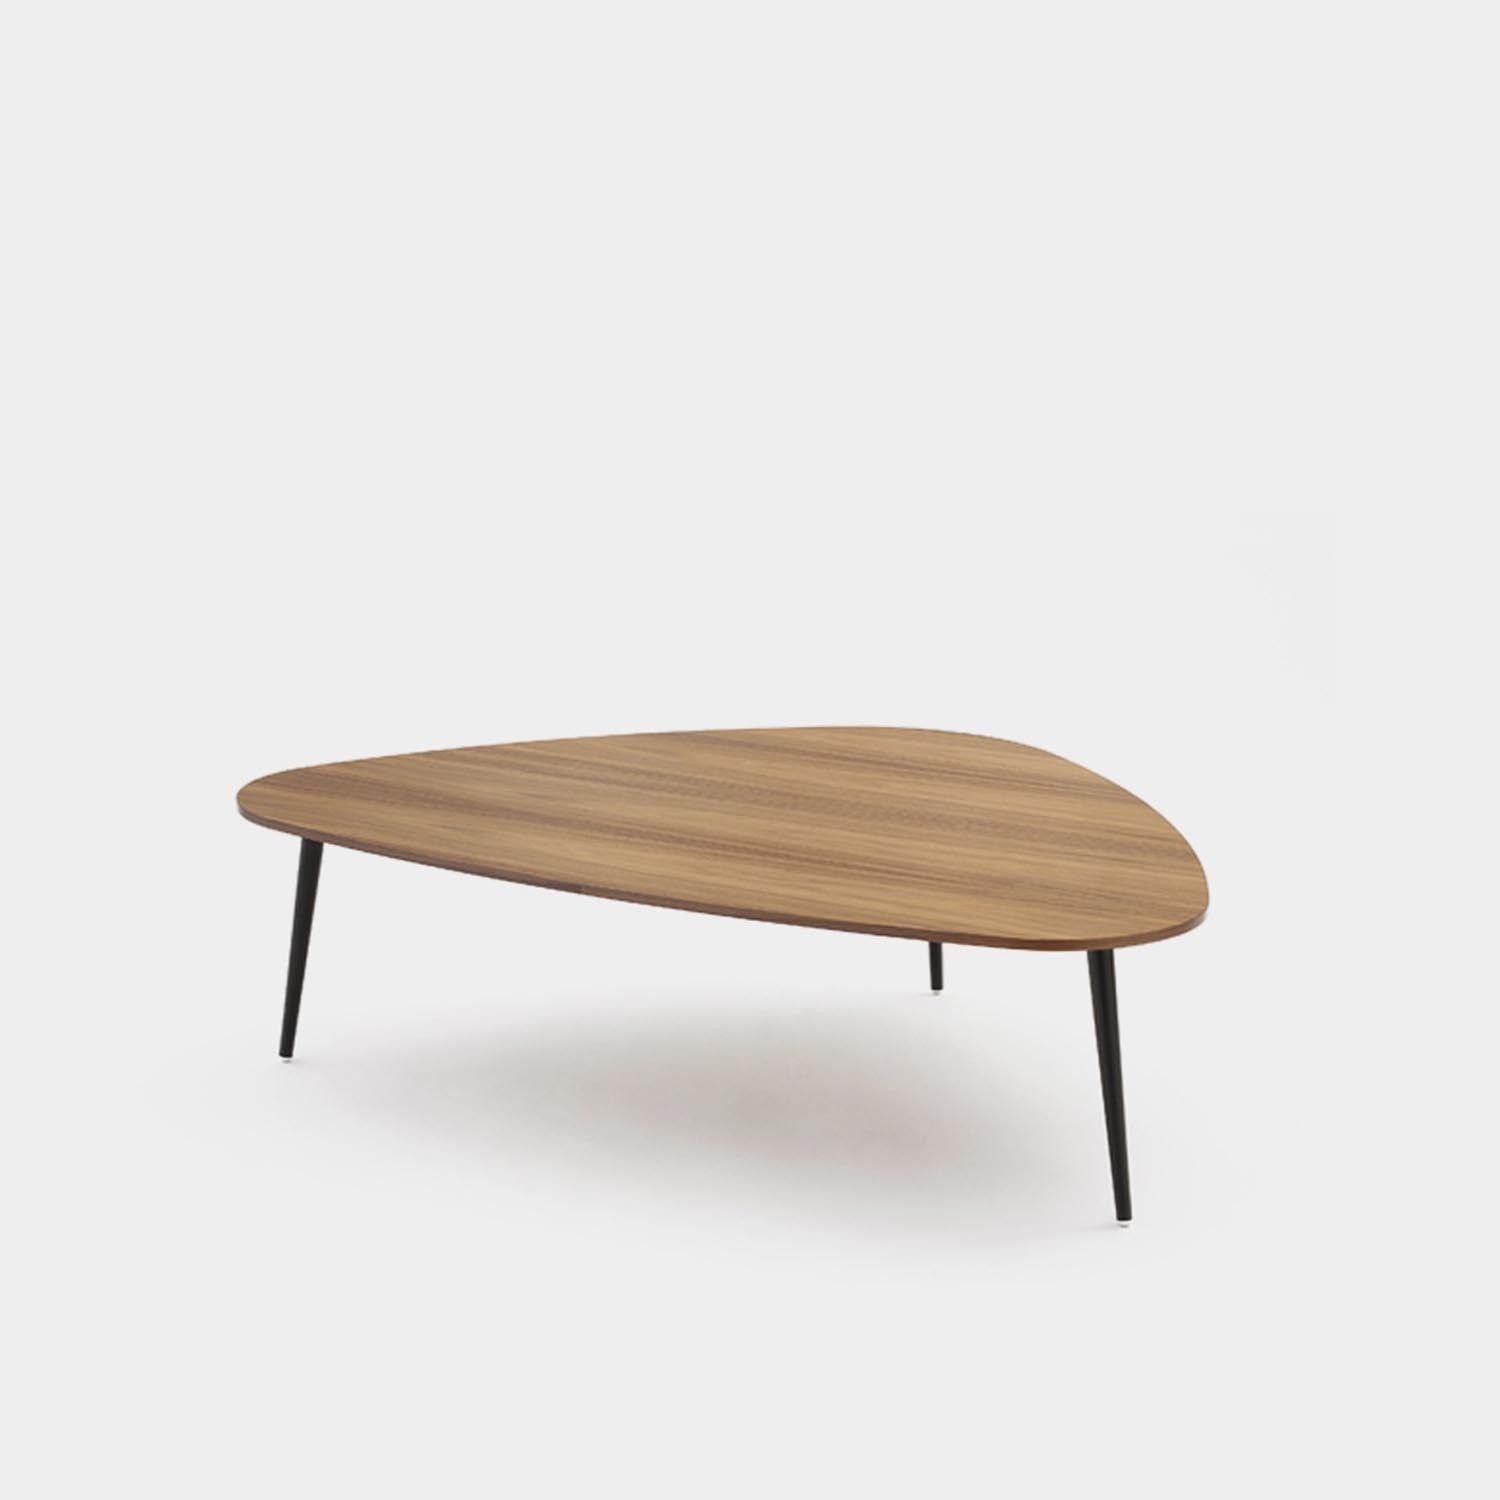 Triangular Coffee Table SOHO, Walnut